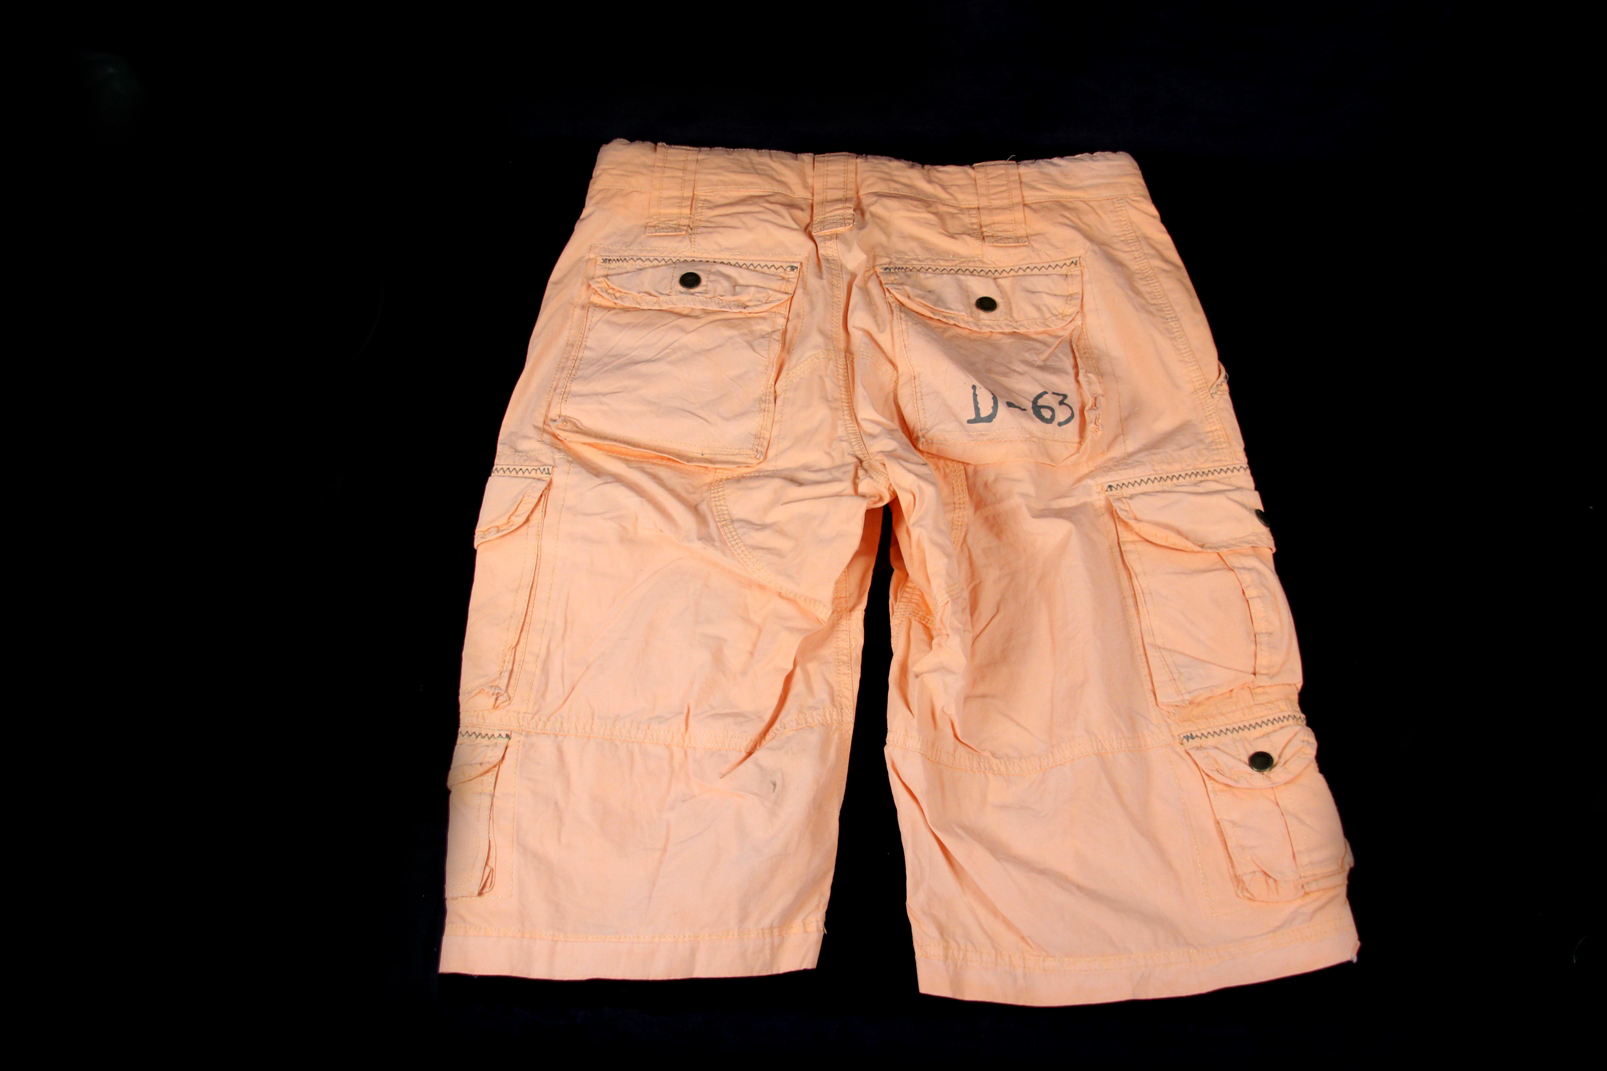 bequeme camp david cargo shorts gr s m lachs bermudas. Black Bedroom Furniture Sets. Home Design Ideas